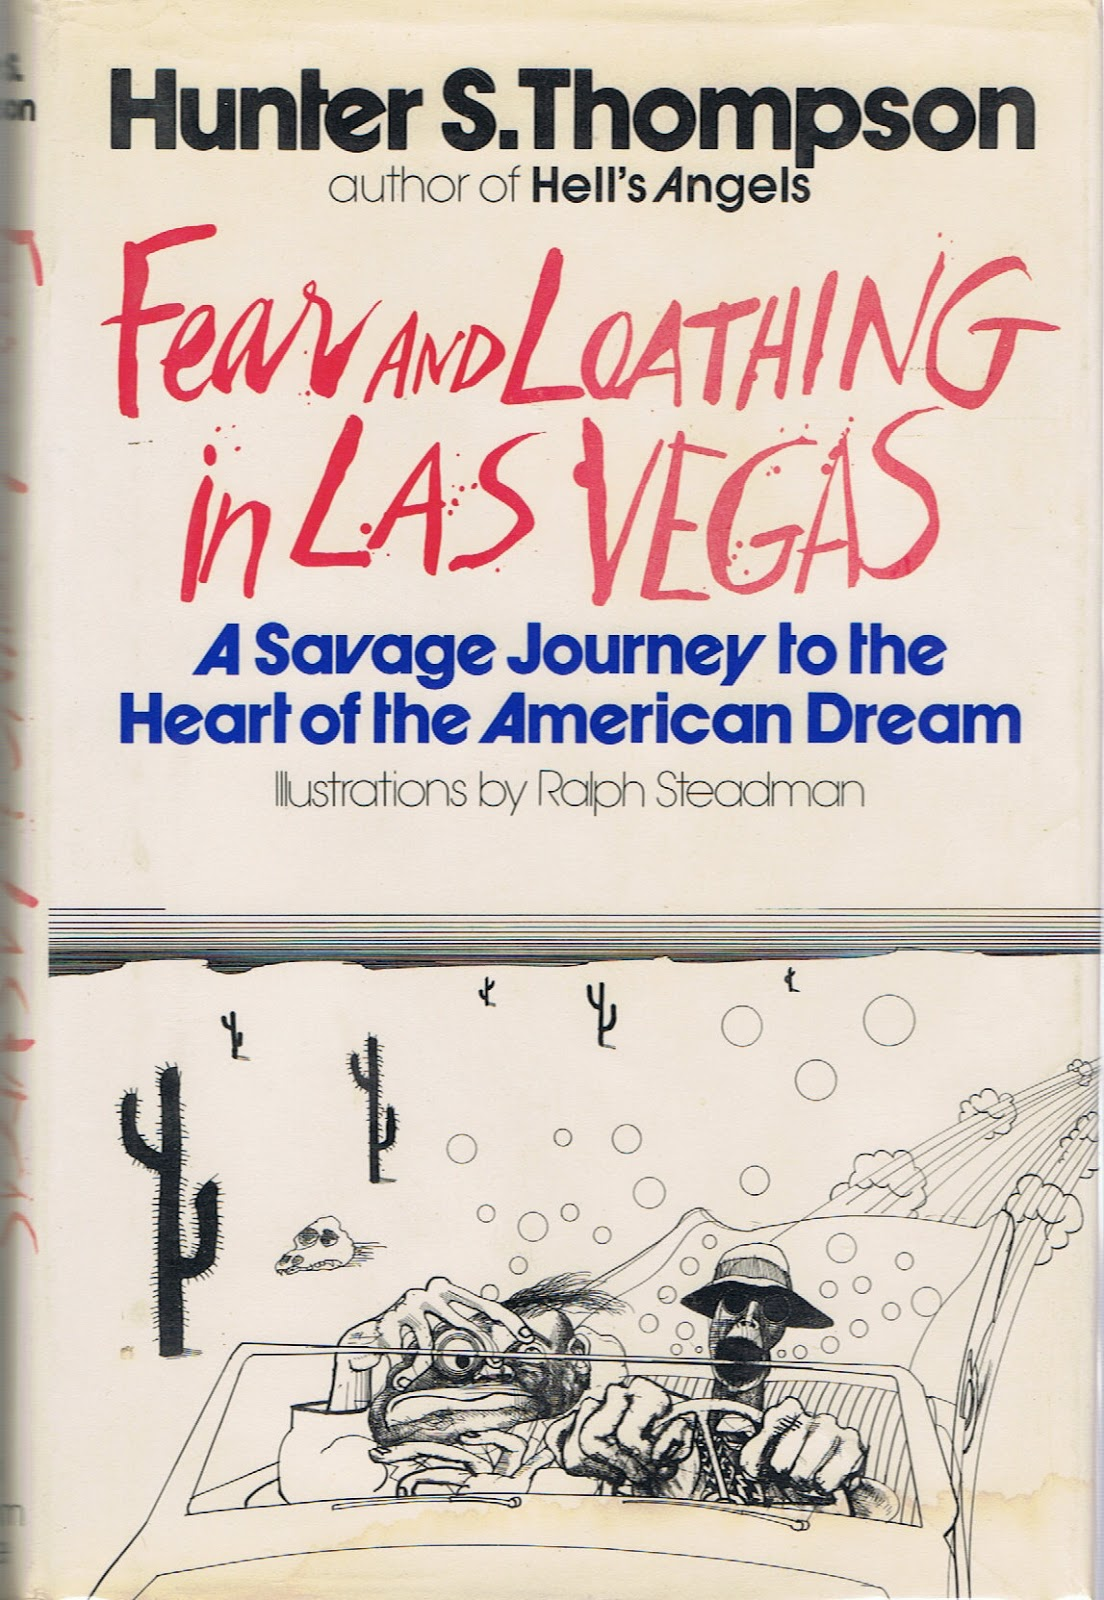 a comparison of the movie and book fear and loathing in las vegas by hunter s thompson Hunter s thompson's 1971 book fear and loathing in las vegas: a savage journey to the heart of the american dream carries with it so much cultural (or counter-cultural) baggage that to make.